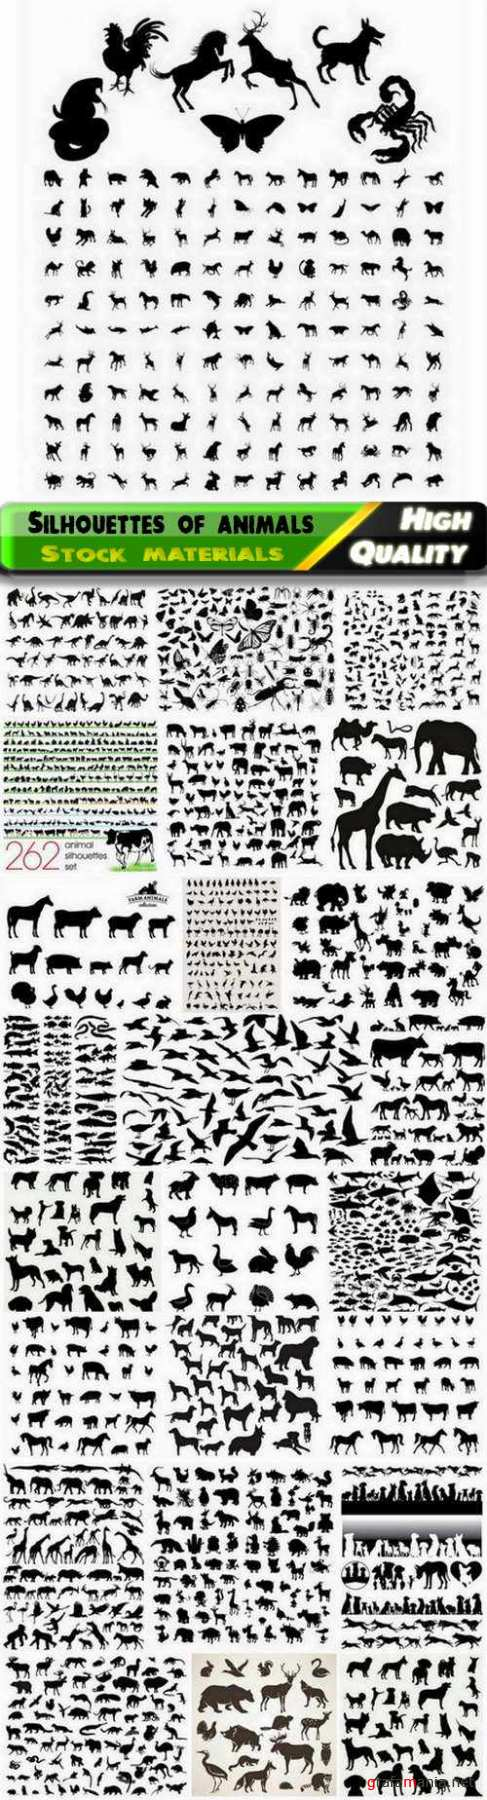 Silhouettes of wild and domestic animals pets and insects - 25 Eps